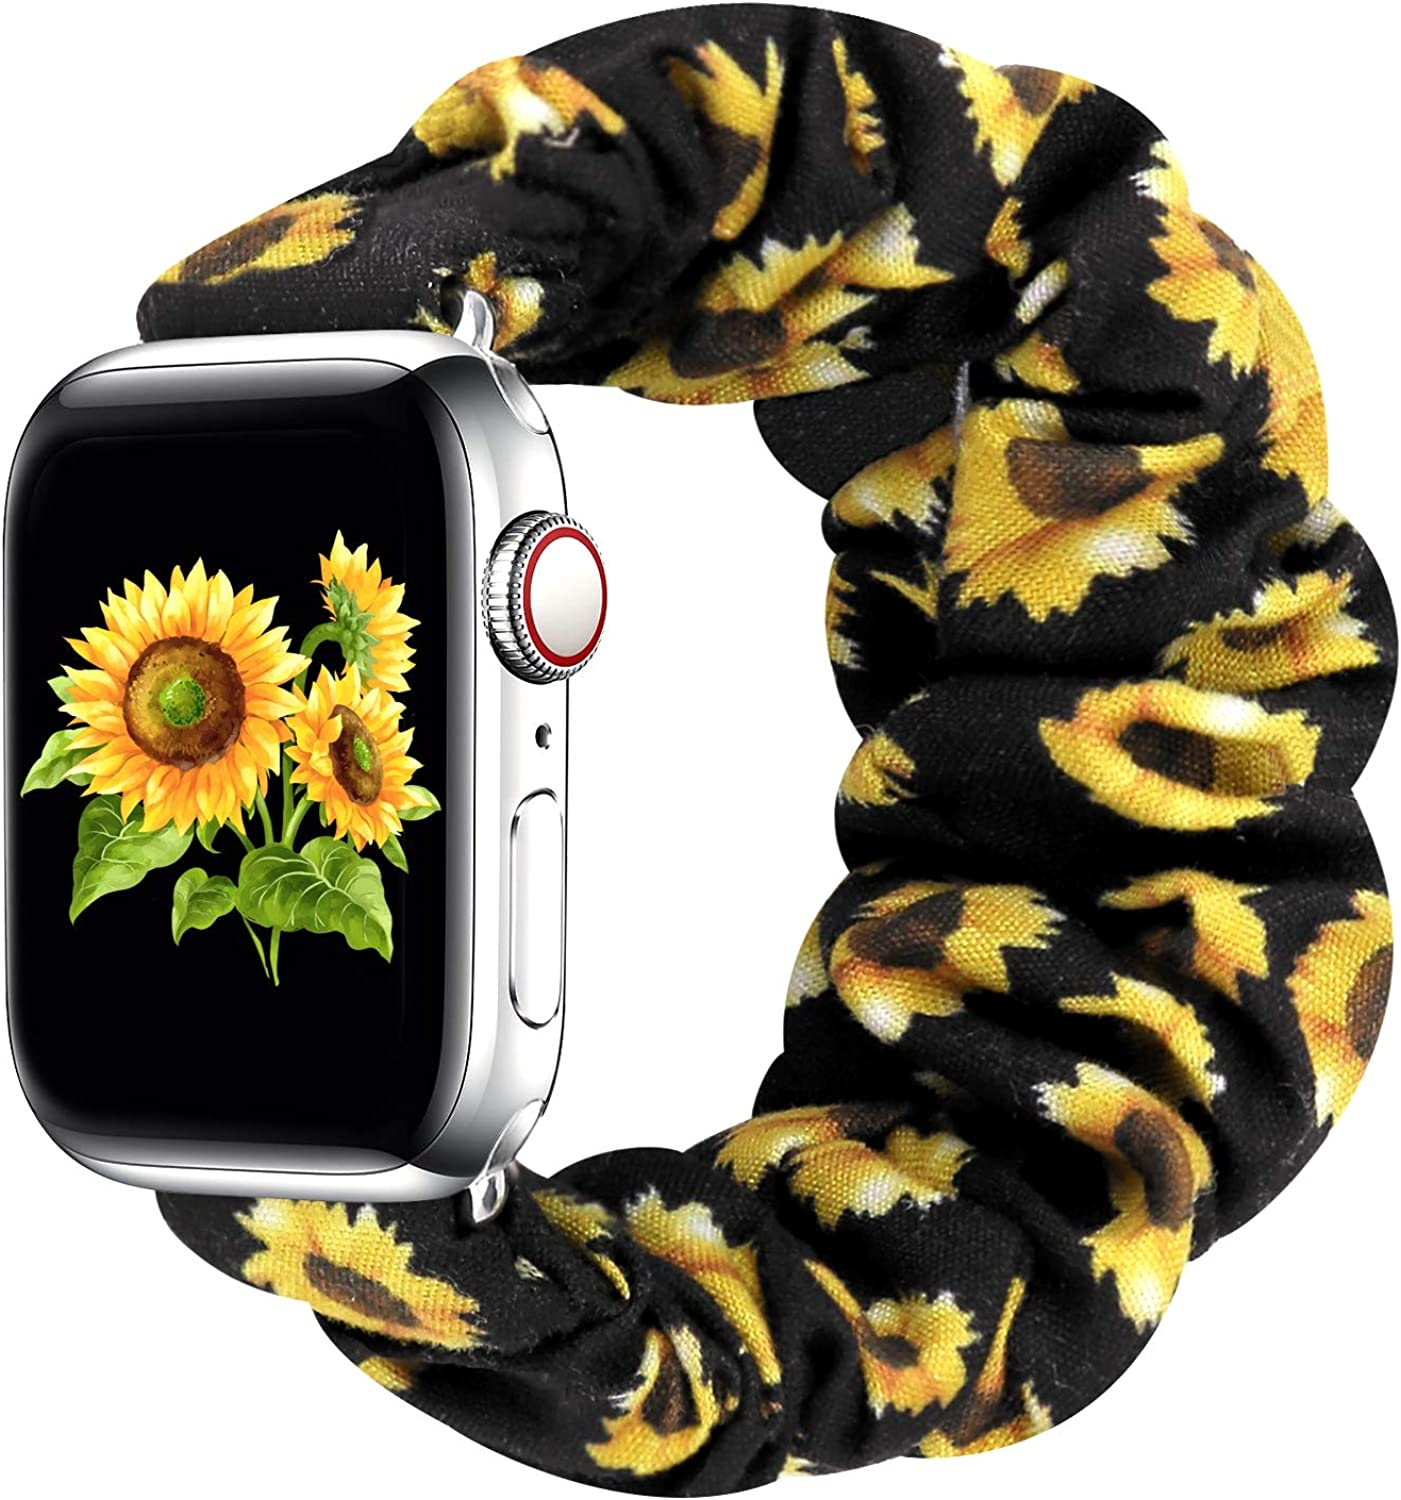 Greatfine Compatible for Apple Watch Band Scrunchie 38mm 40mm 42mm 44mm,Soft Elastic Strap Watch Bands,With iWatch Series 5 4 3 2 1,S M L Printing Replacement Wristband for Women Men